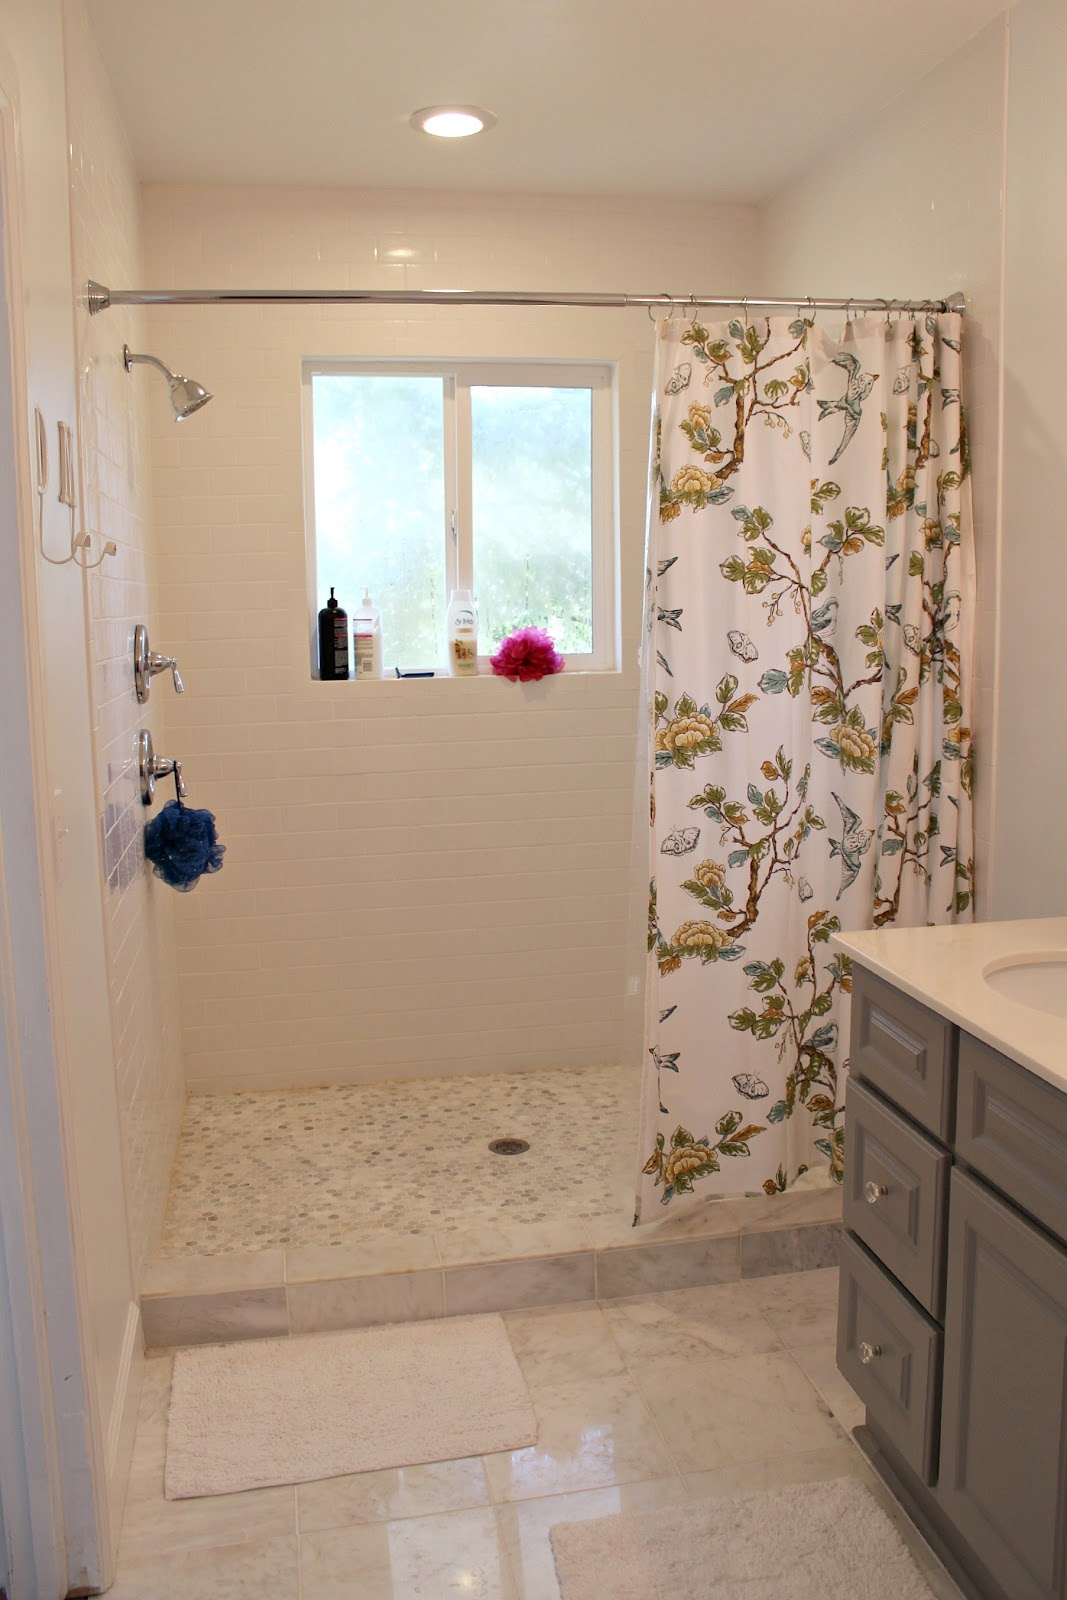 Remarkable Small Bathroom Walk-In Shower with Window 1067 x 1600 · 206 kB · jpeg